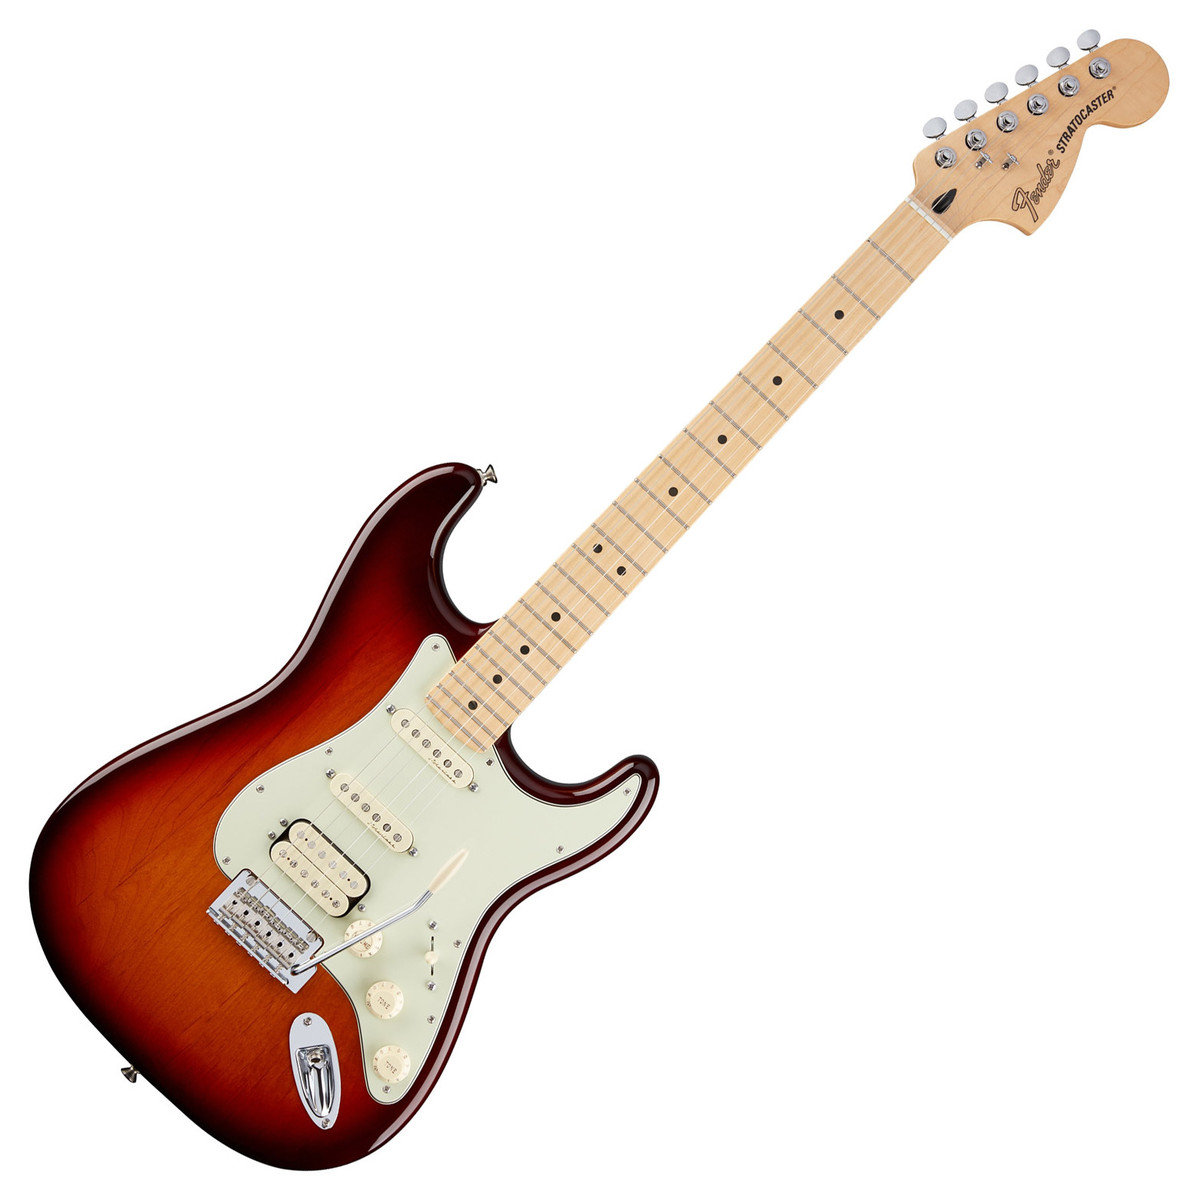 fender deluxe stratocaster hss tobacco sunburst at gear4music. Black Bedroom Furniture Sets. Home Design Ideas